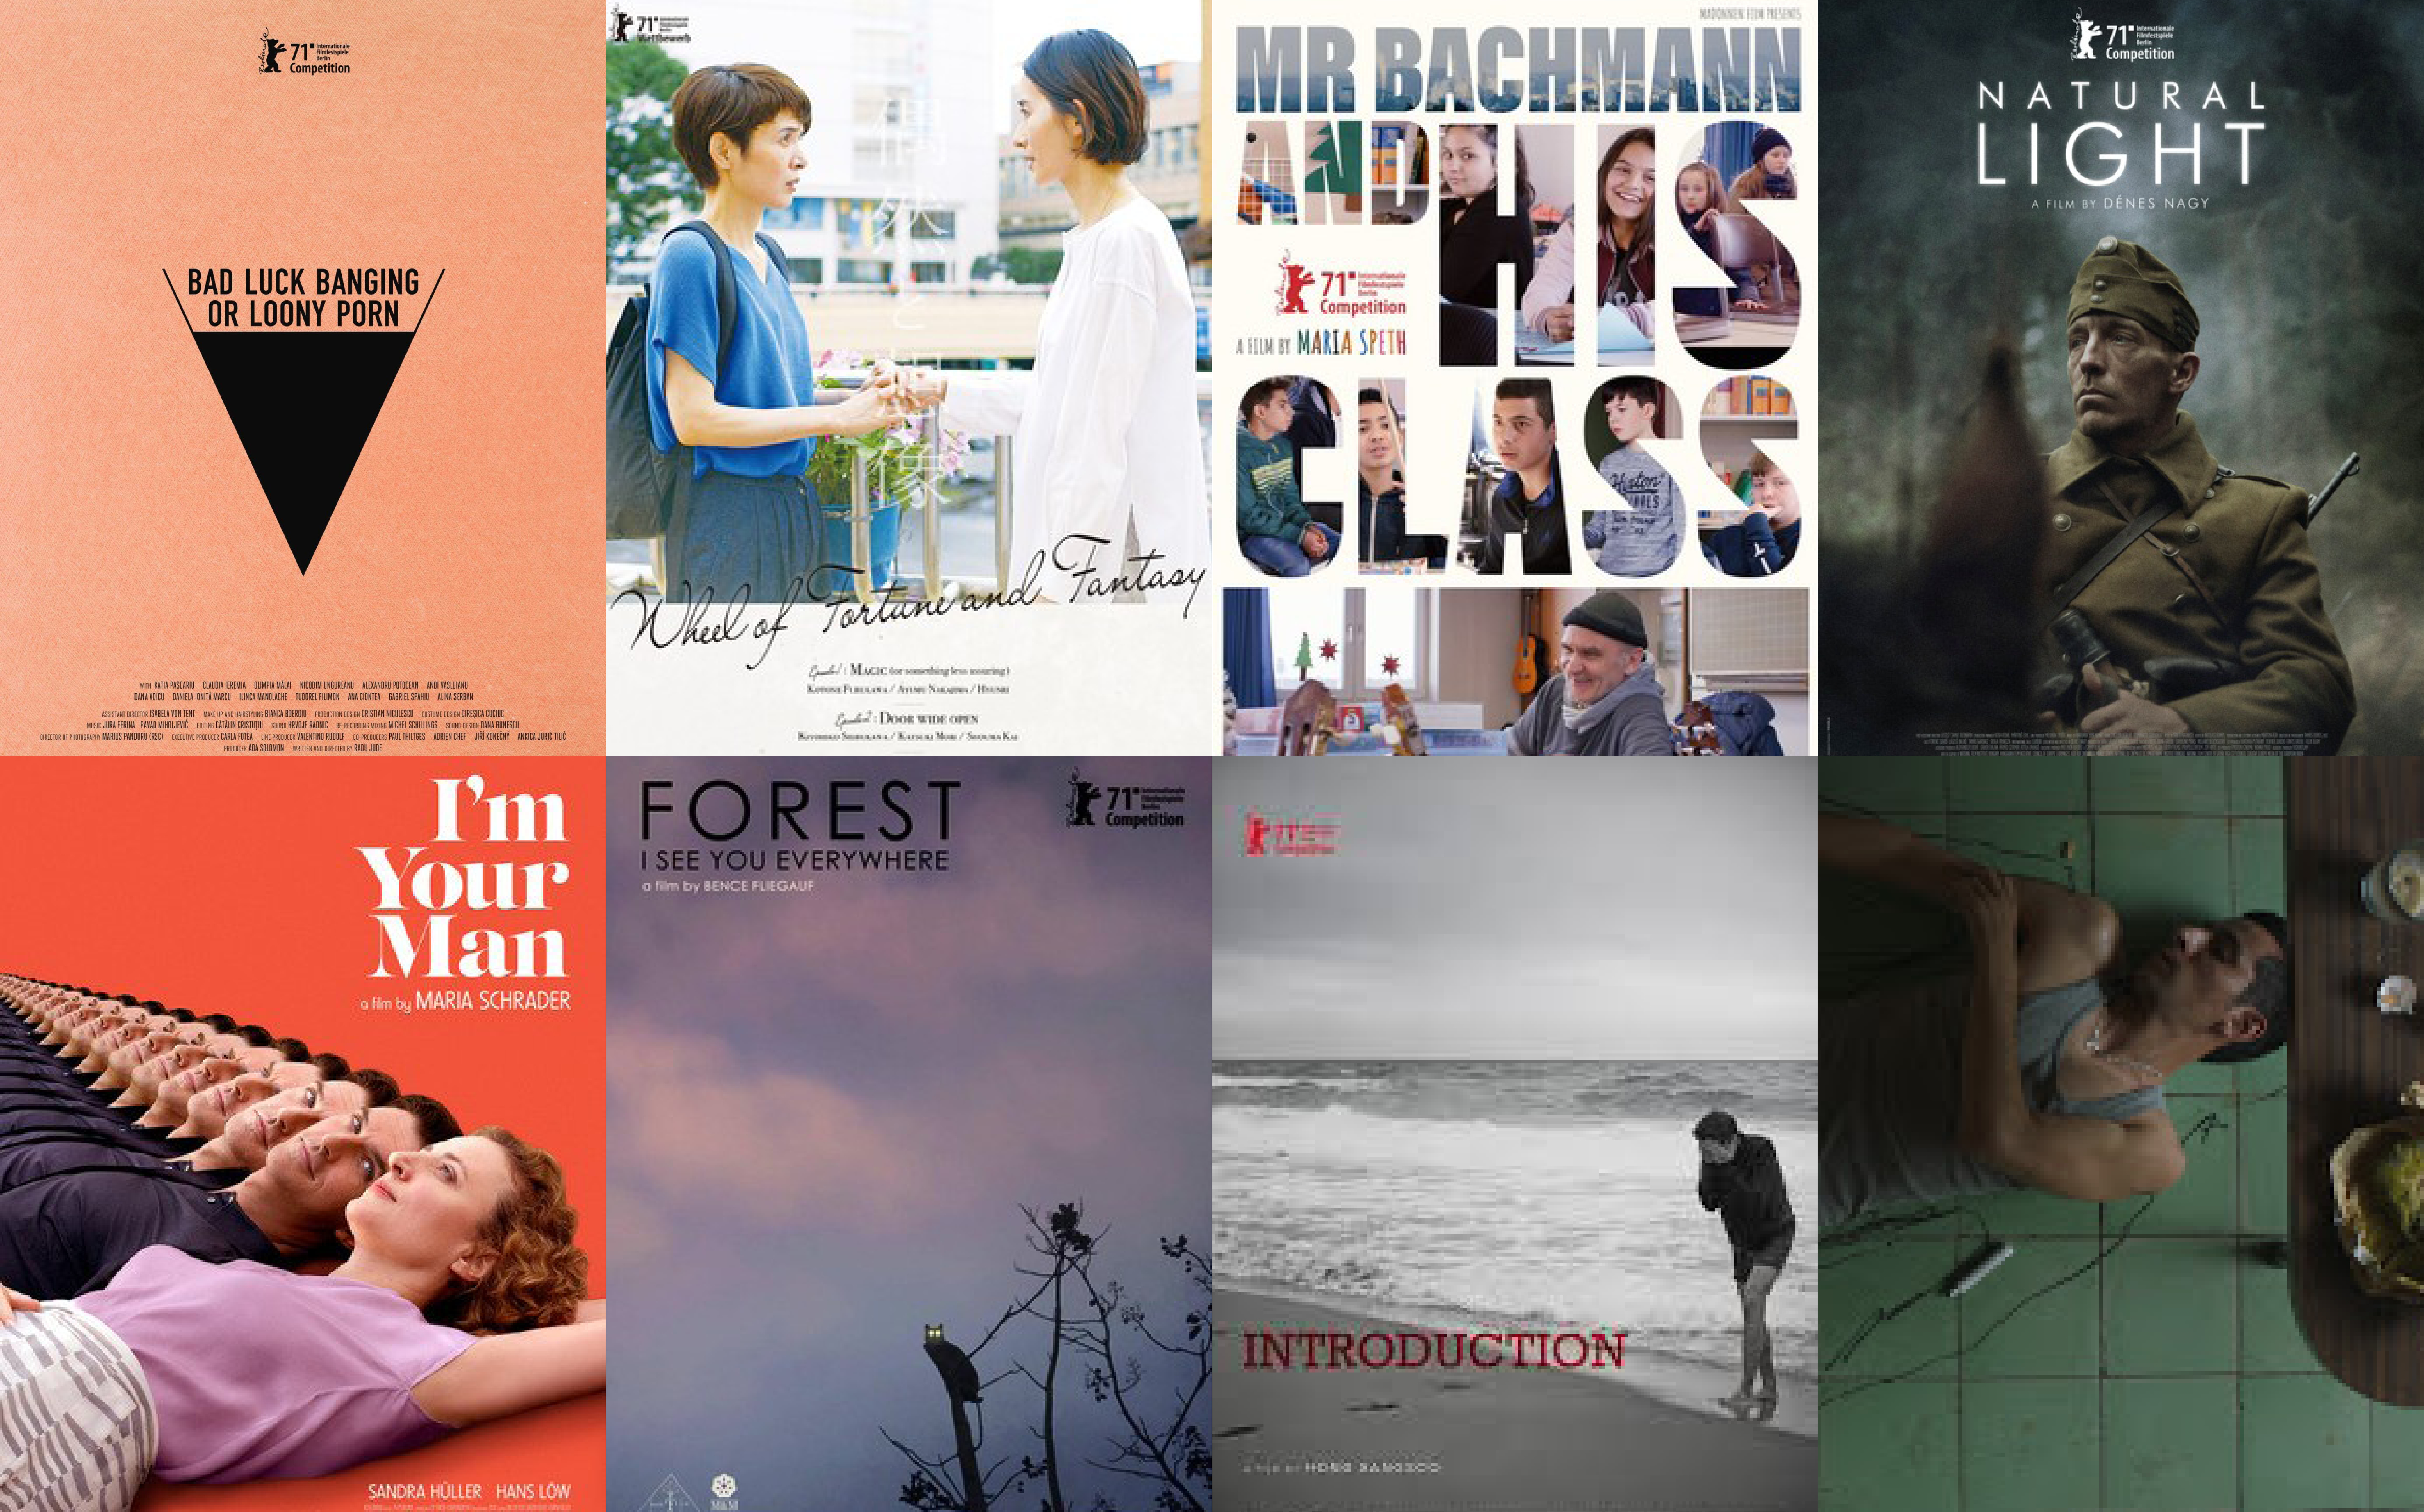 Berlinale - Competition Winners